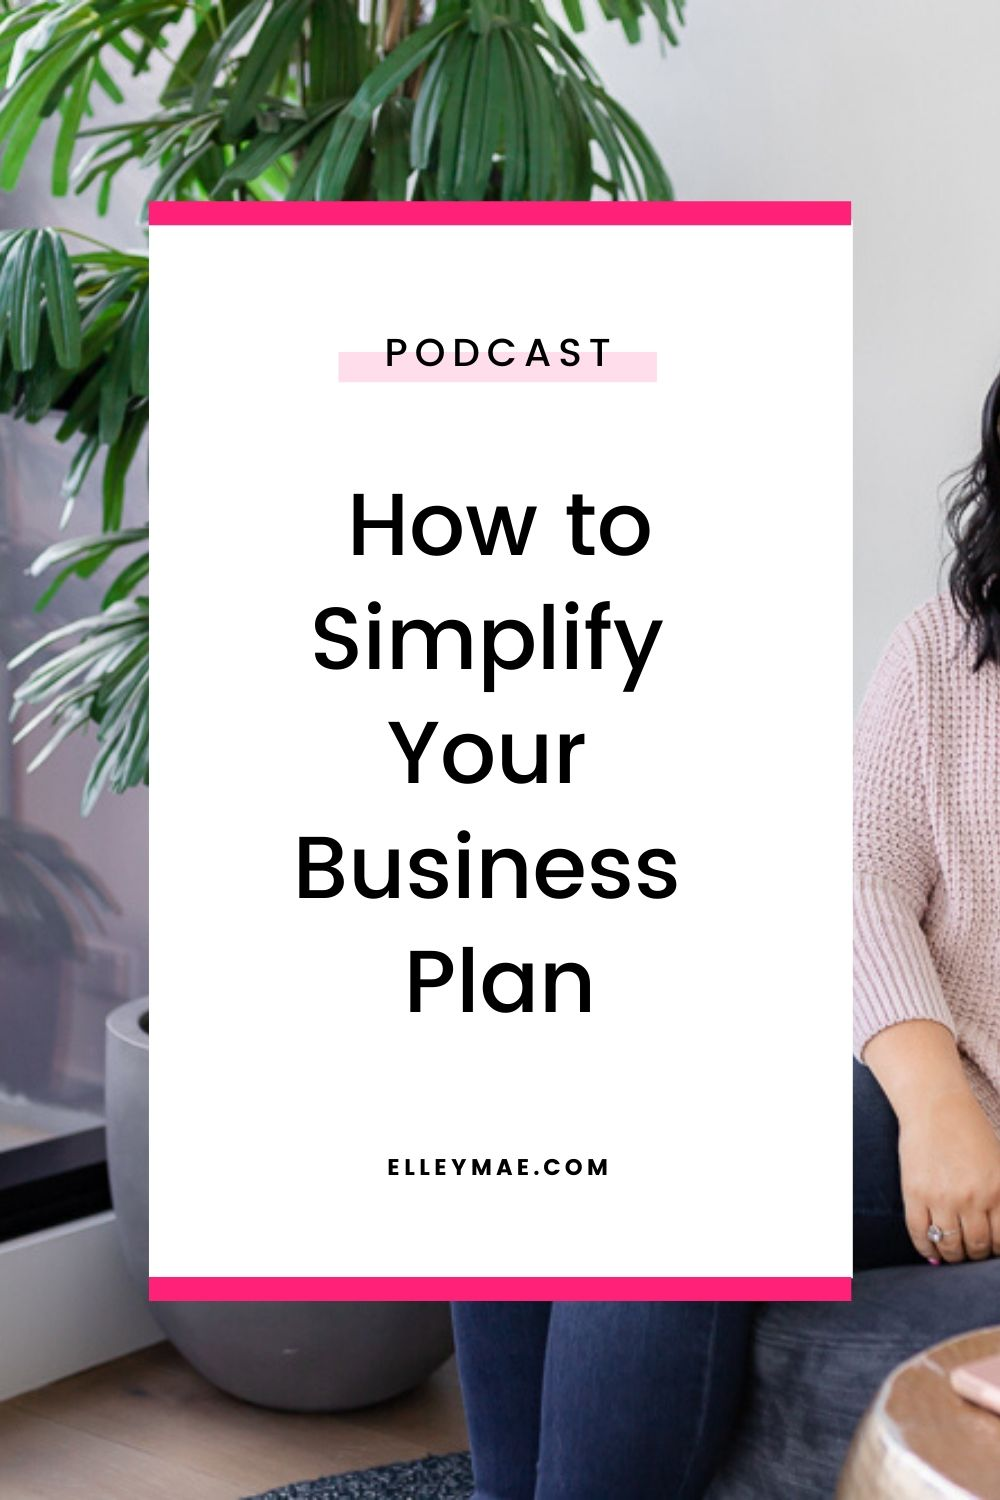 How to Simplify Your Business Plan - 1